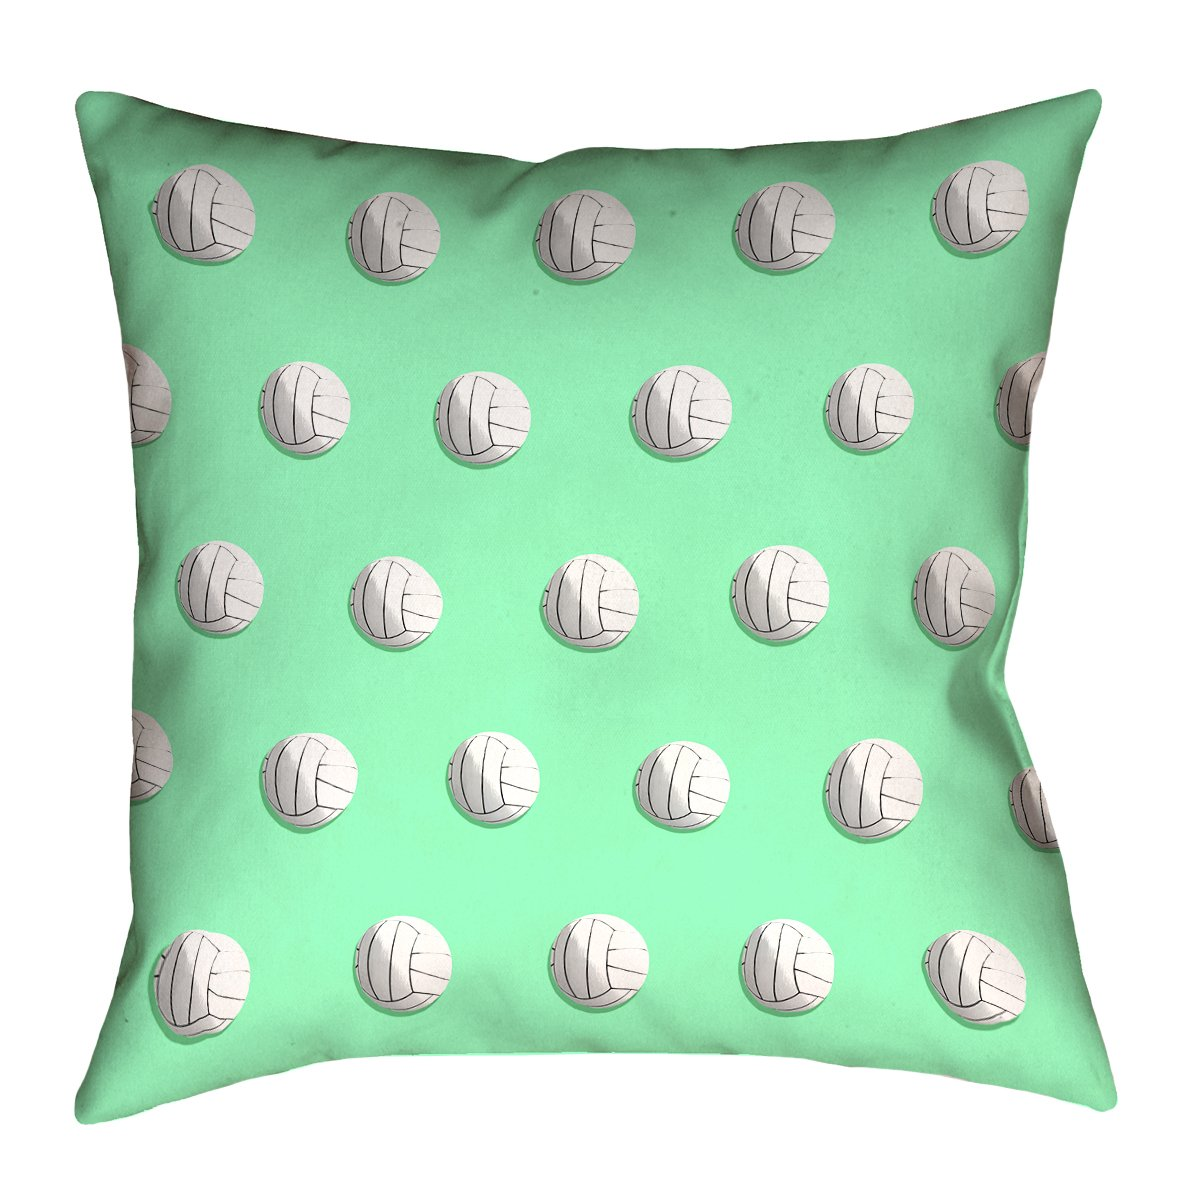 ArtVerse Katelyn Smith 26 x 26 Cotton Twill Double Sided Print with Concealed Zipper /& Insert Green Volleyball Pillow